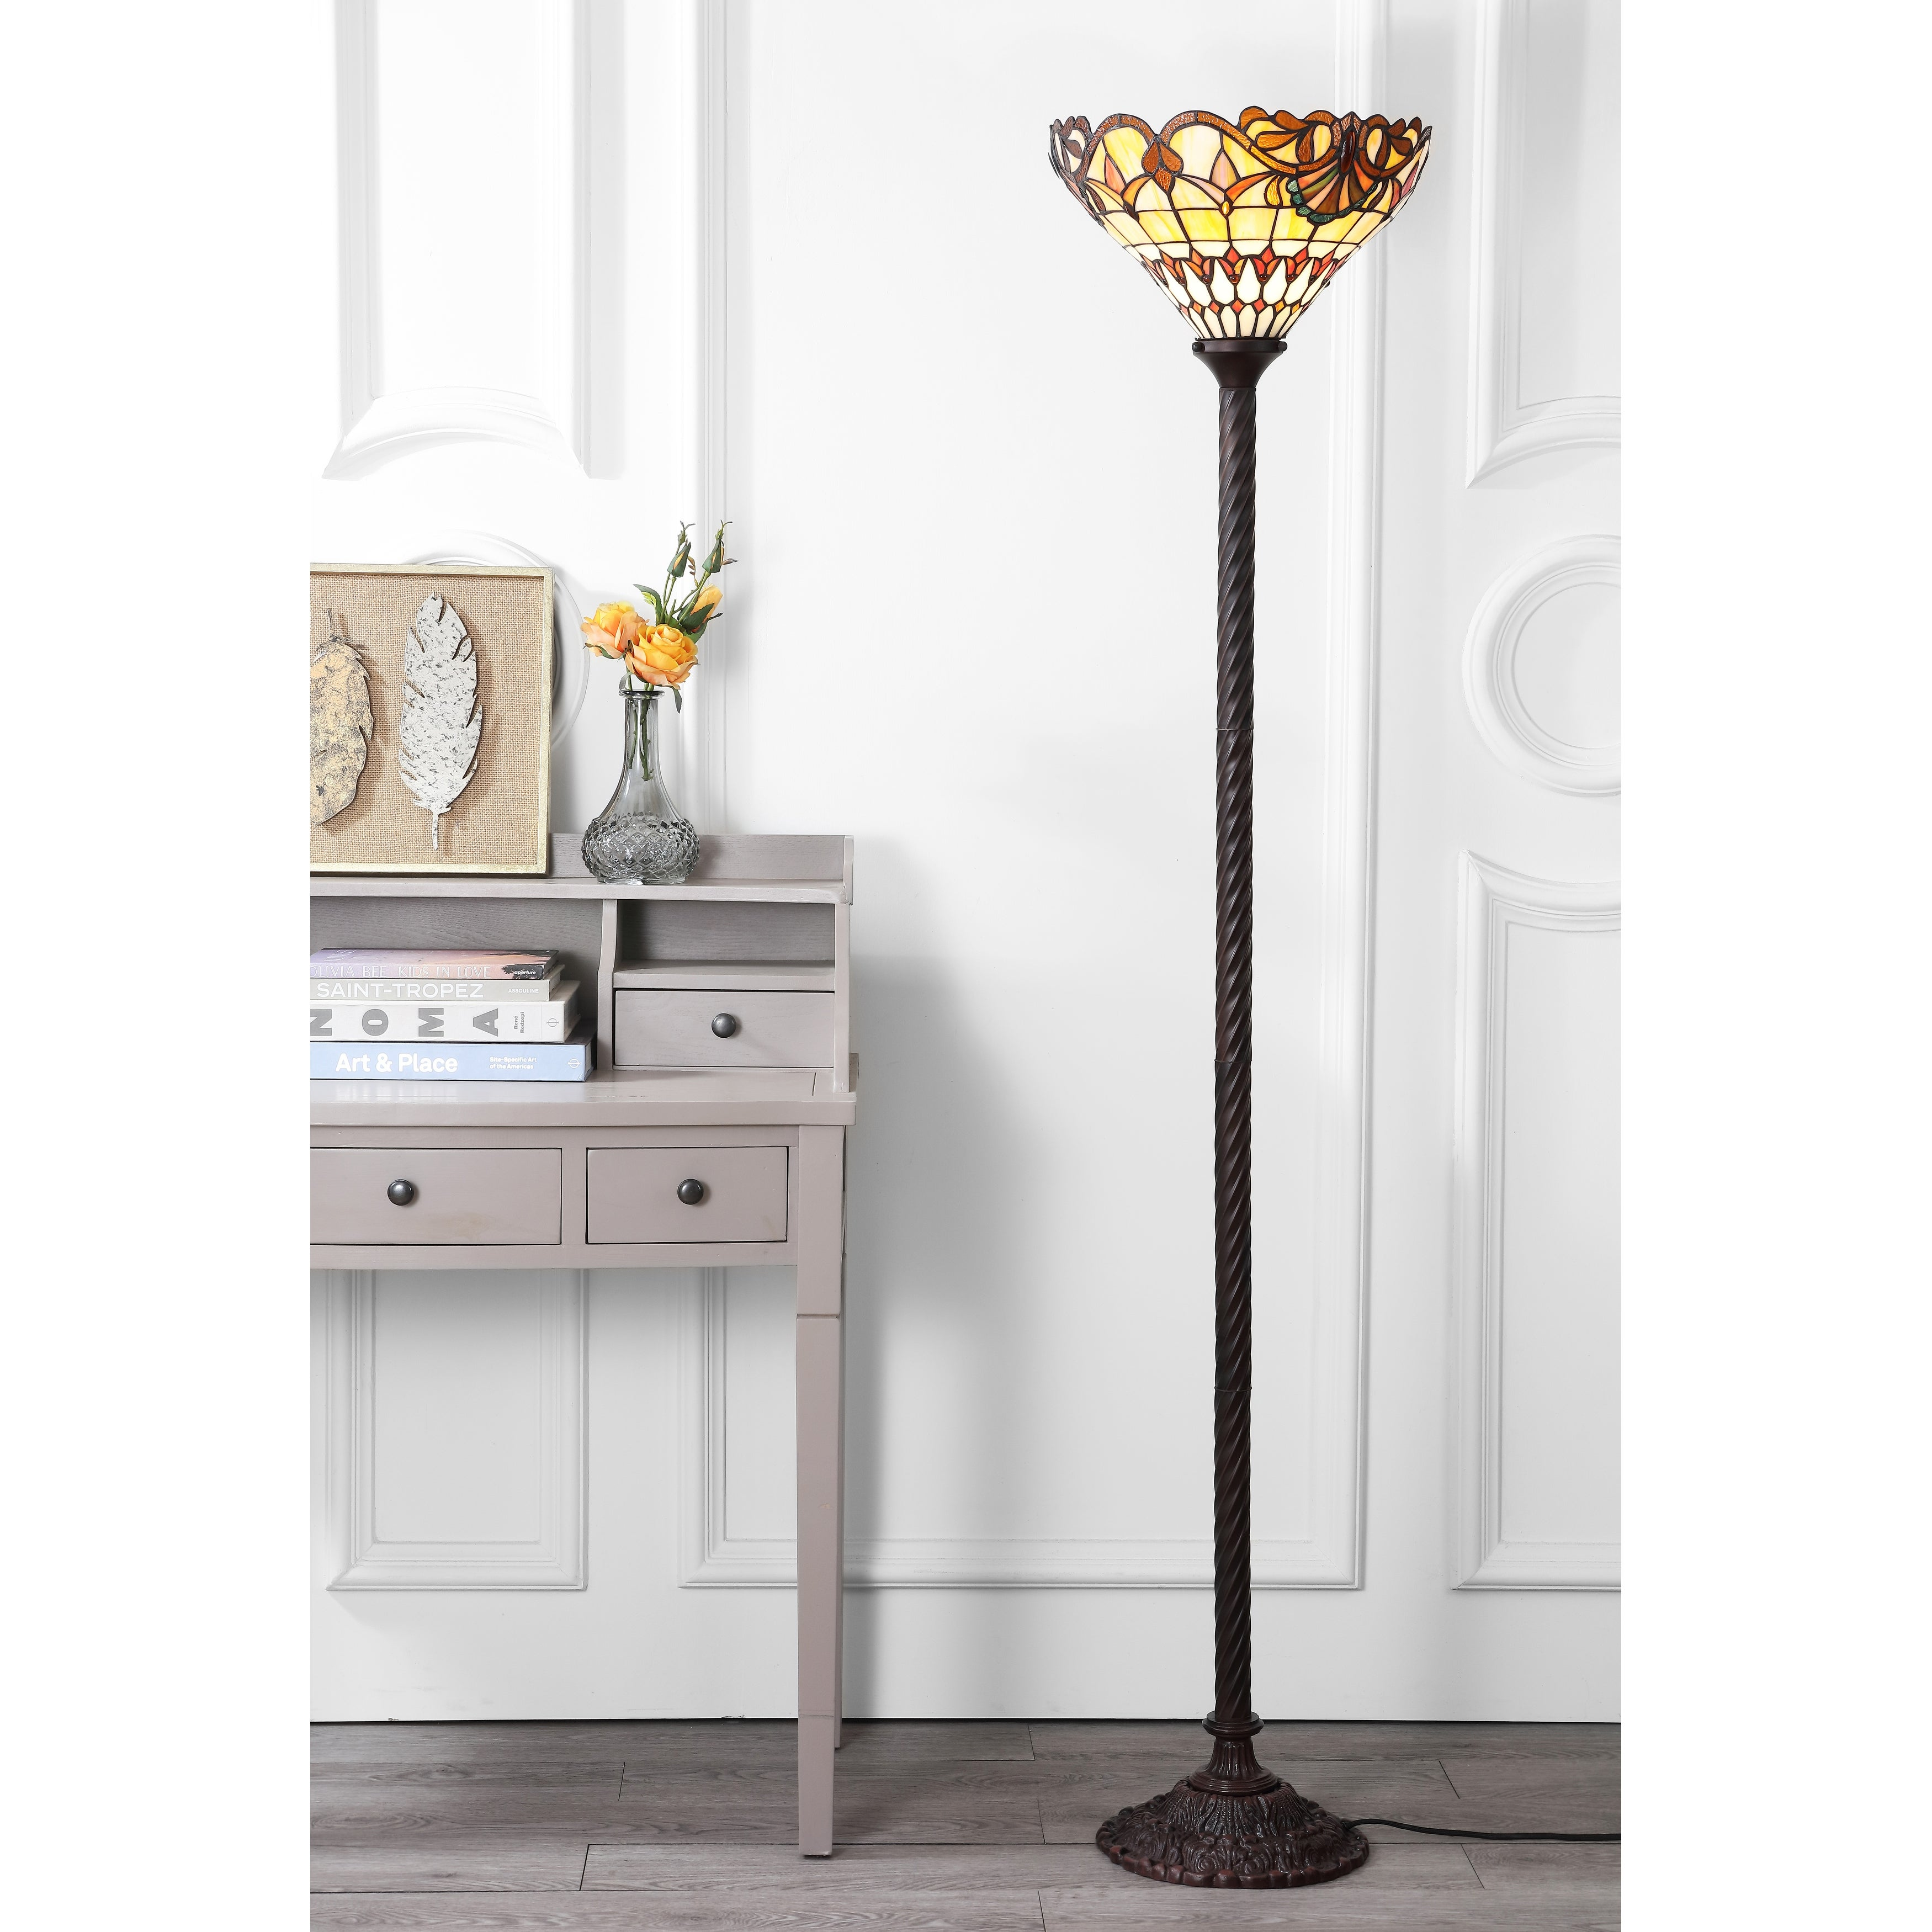 Davis Tiffany Style 70 Torchiere Led Floor Lamp Bronze By Jonathan Y 70 H X 15 W X 15 D Overstock 19549005